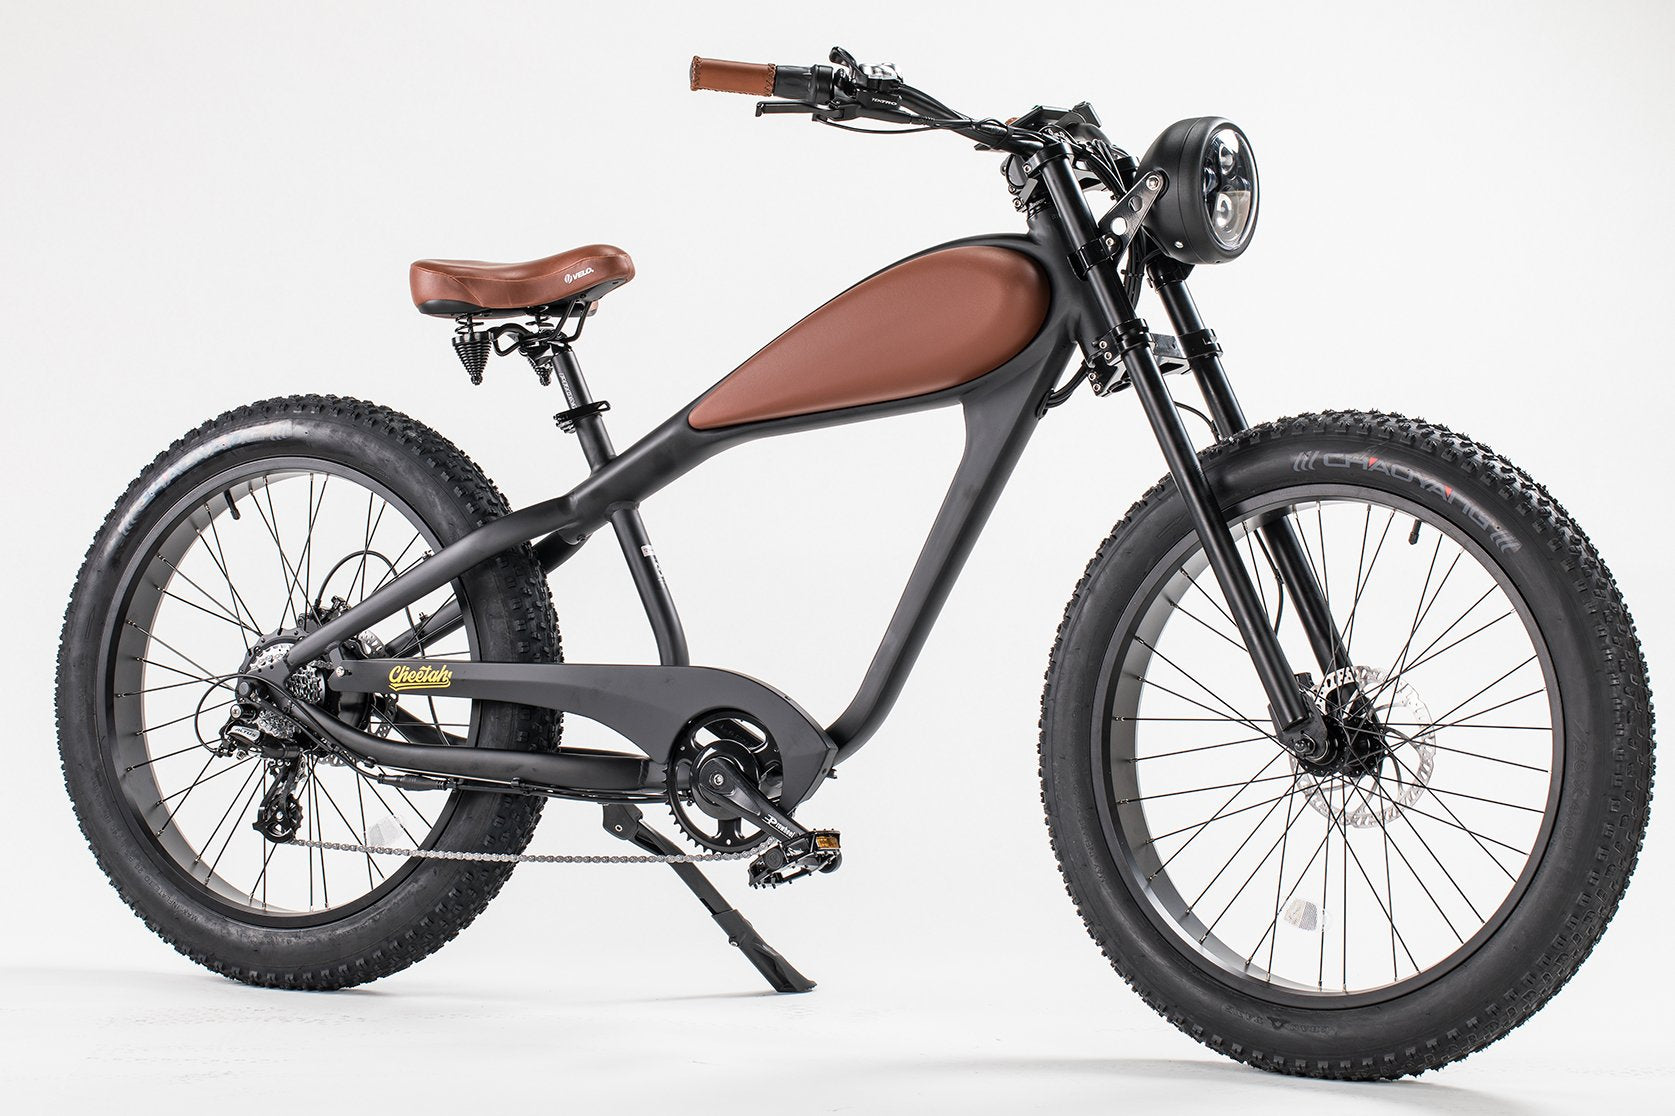 CIVI BIKES CHEETAH - THE CAFE RACER Electric Bicycle 2020